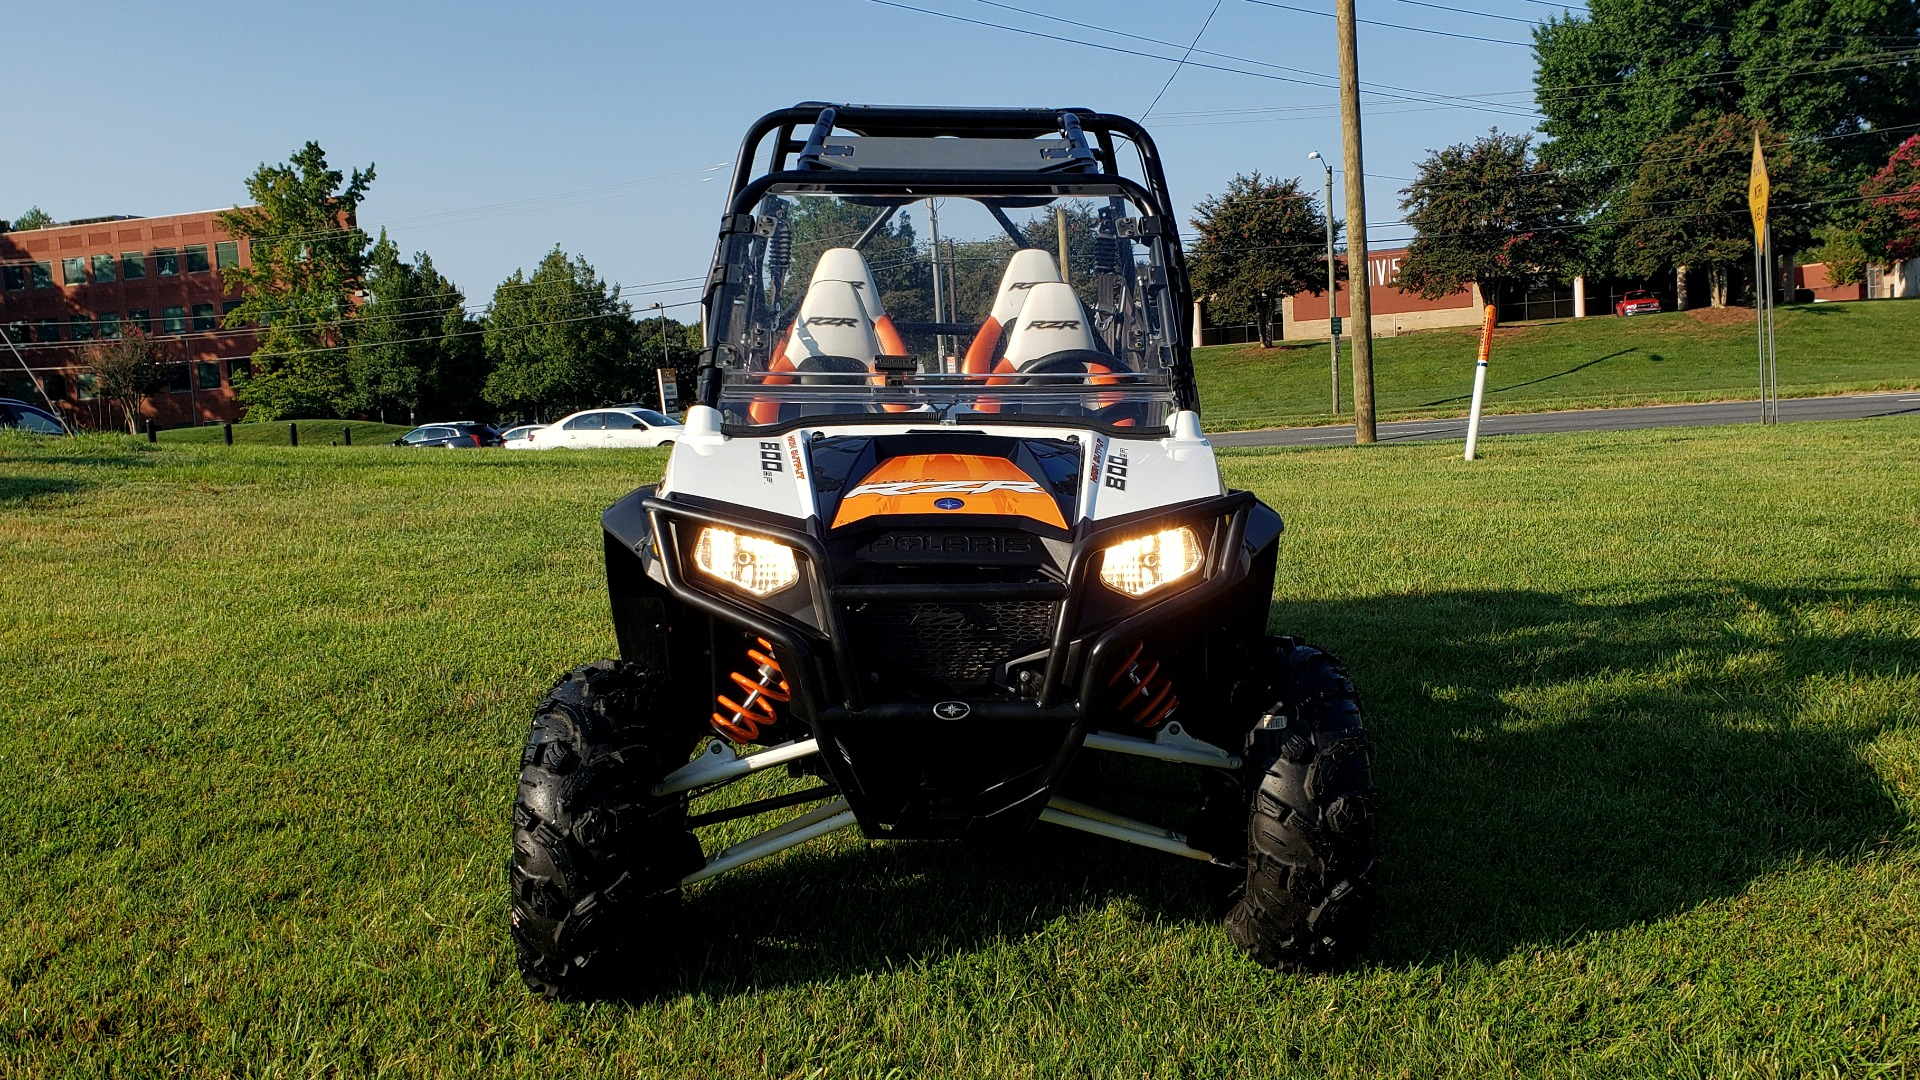 Used 2012 POLARIS RANGER RZR4 / HO 800 EFI / IPHONE CONNECT / SPEAKERS / NEW TIRES for sale Sold at Formula Imports in Charlotte NC 28227 13